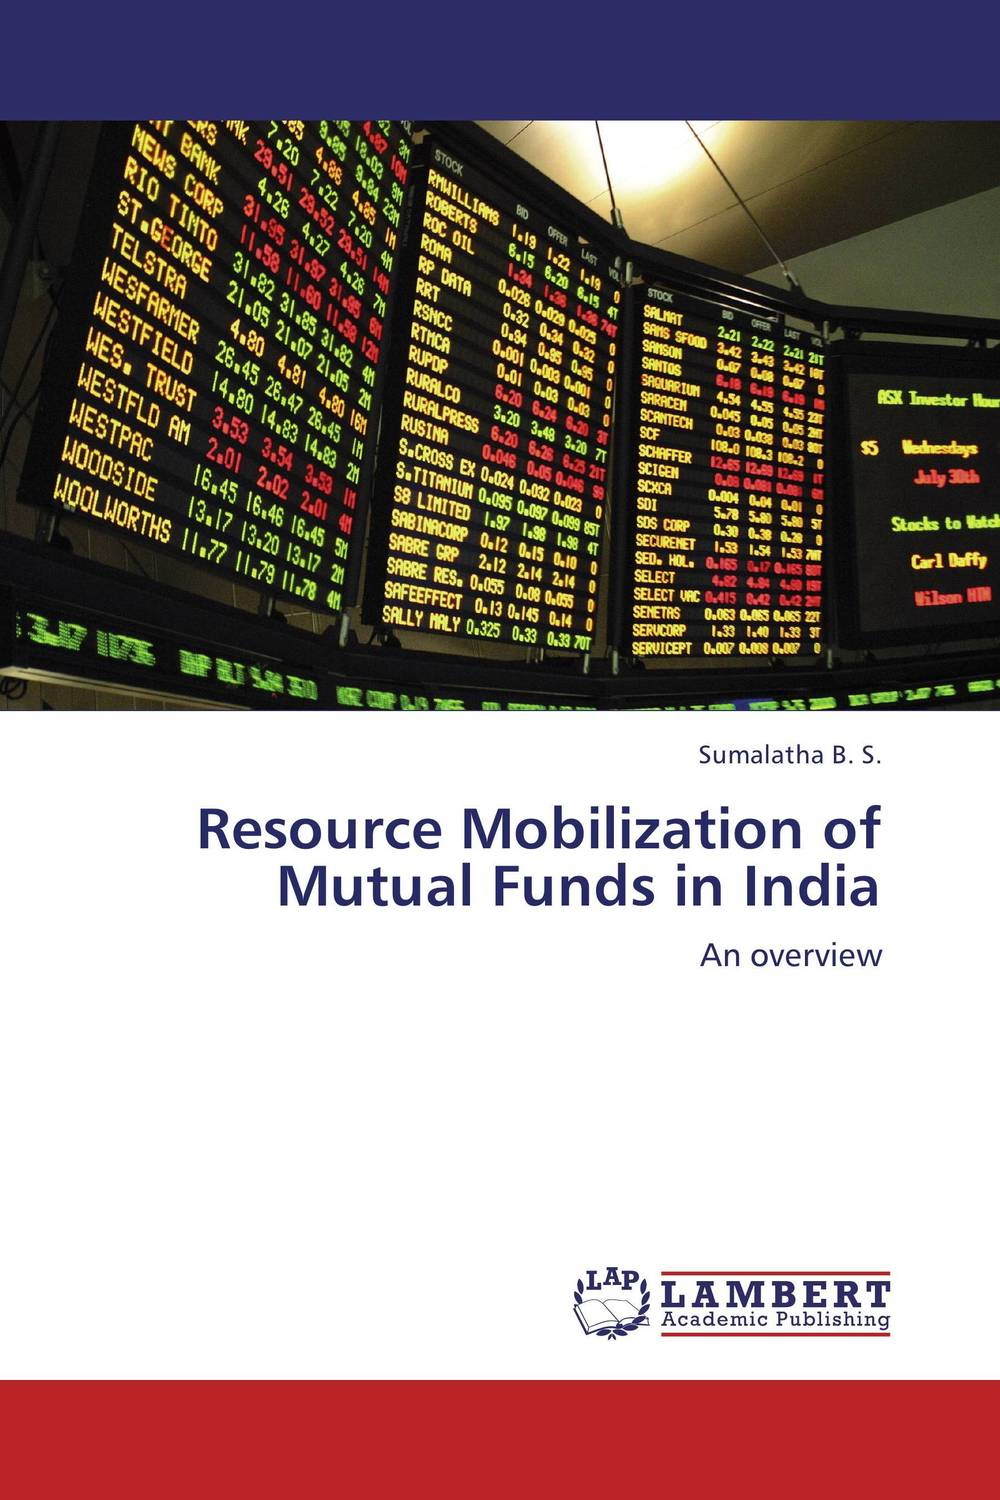 Resource Mobilization of Mutual Funds in India john haslem a mutual funds portfolio structures analysis management and stewardship